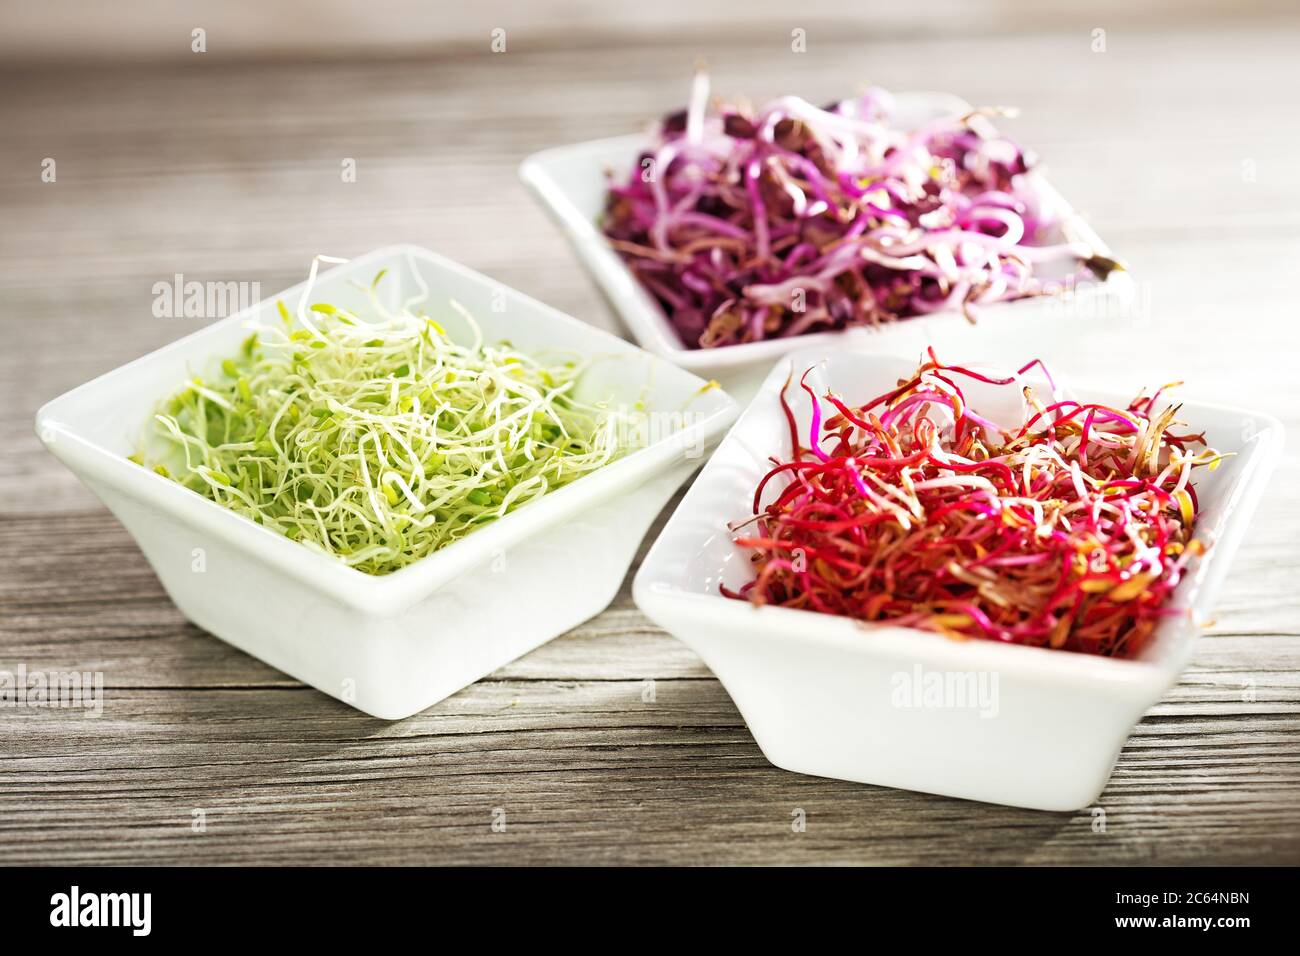 beetroot, radish and alfalfa sprouts in china bowls on wooden table Stock Photo